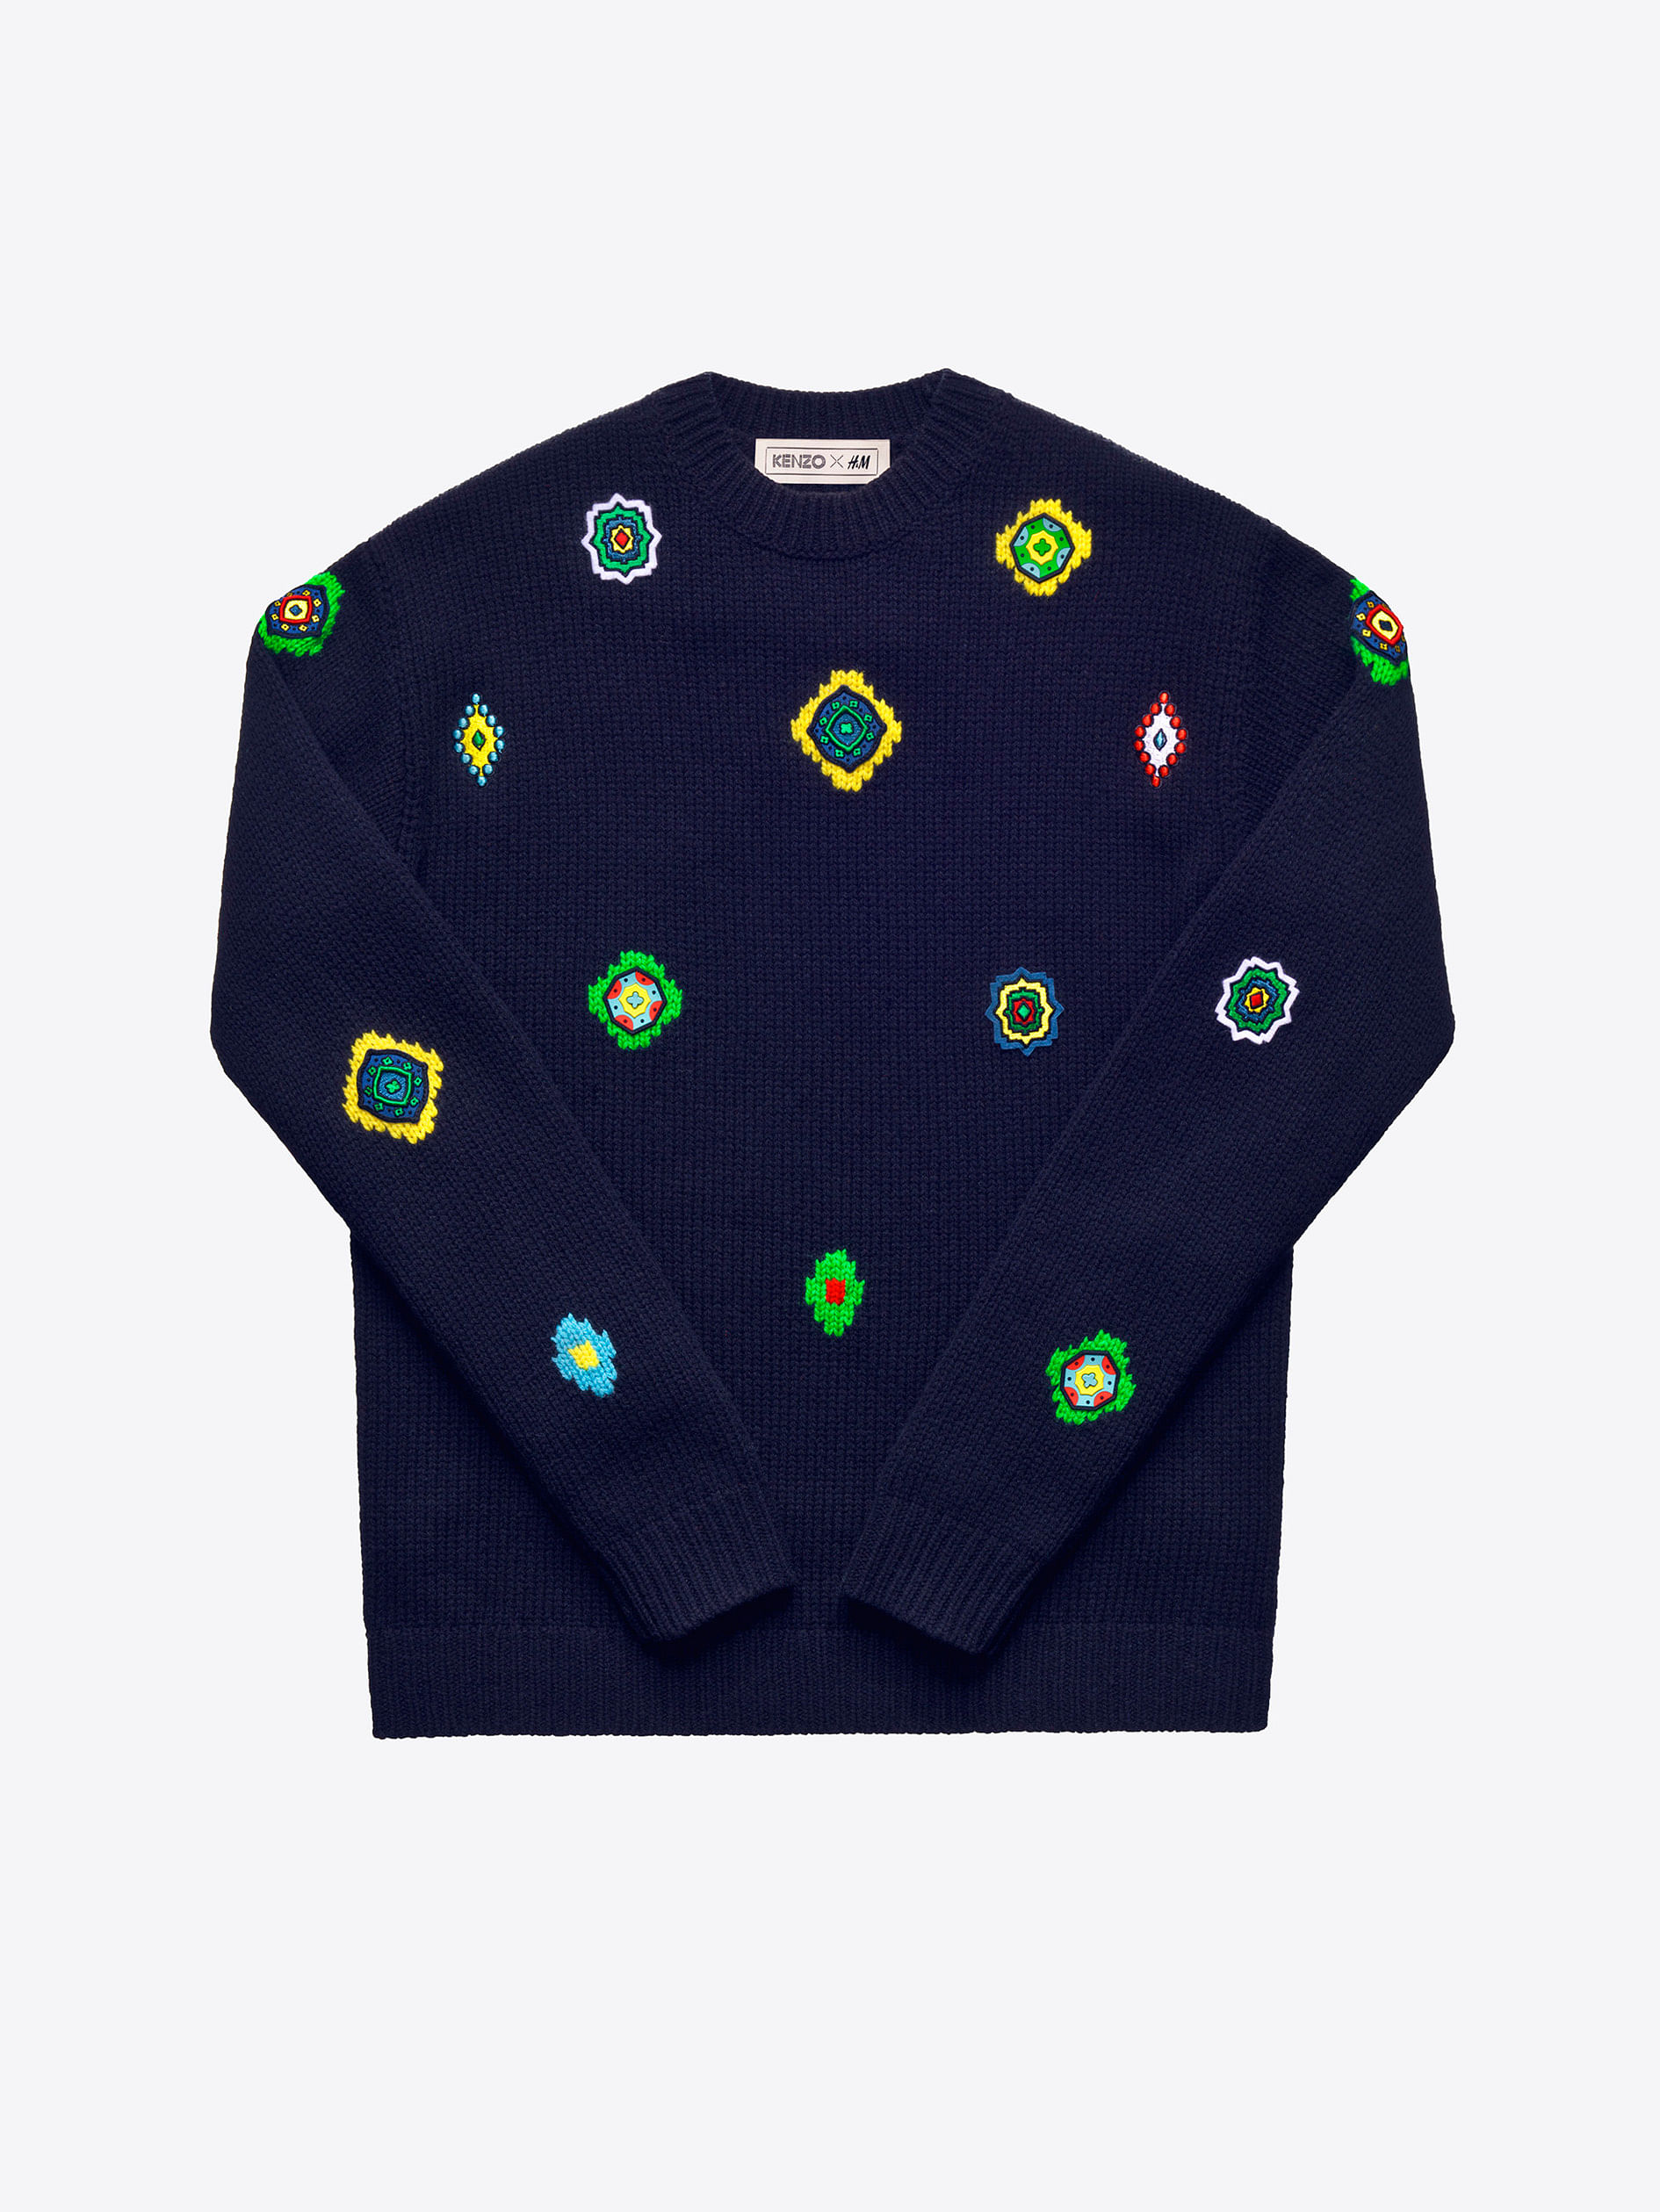 Kenzo is hip again, Fashion News & Top Stories The Straits